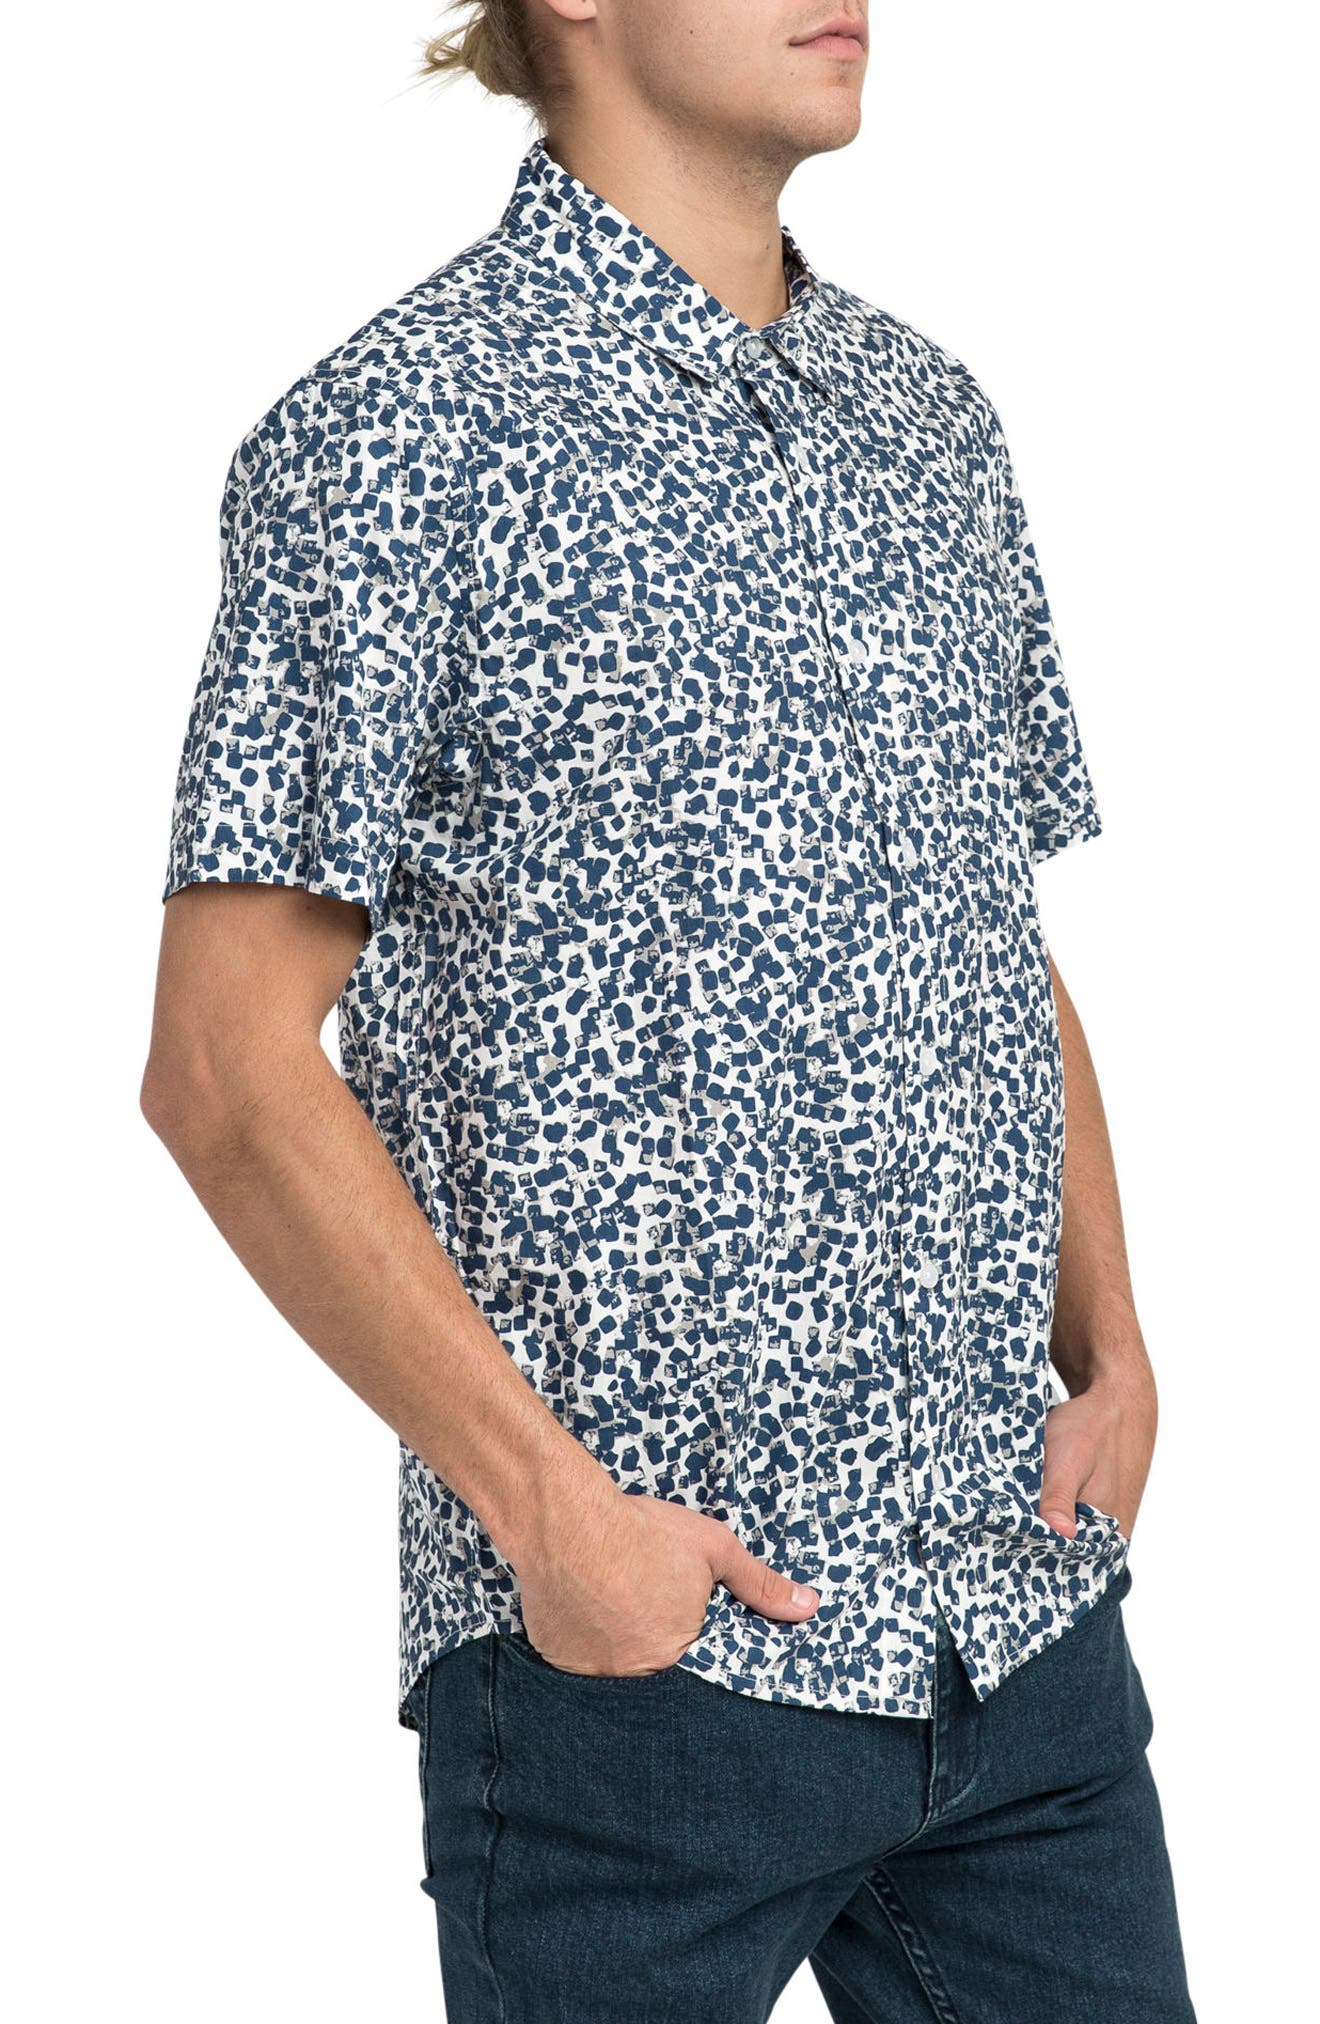 Barrow Short Sleeve Woven Shirt,                             Alternate thumbnail 3, color,                             900